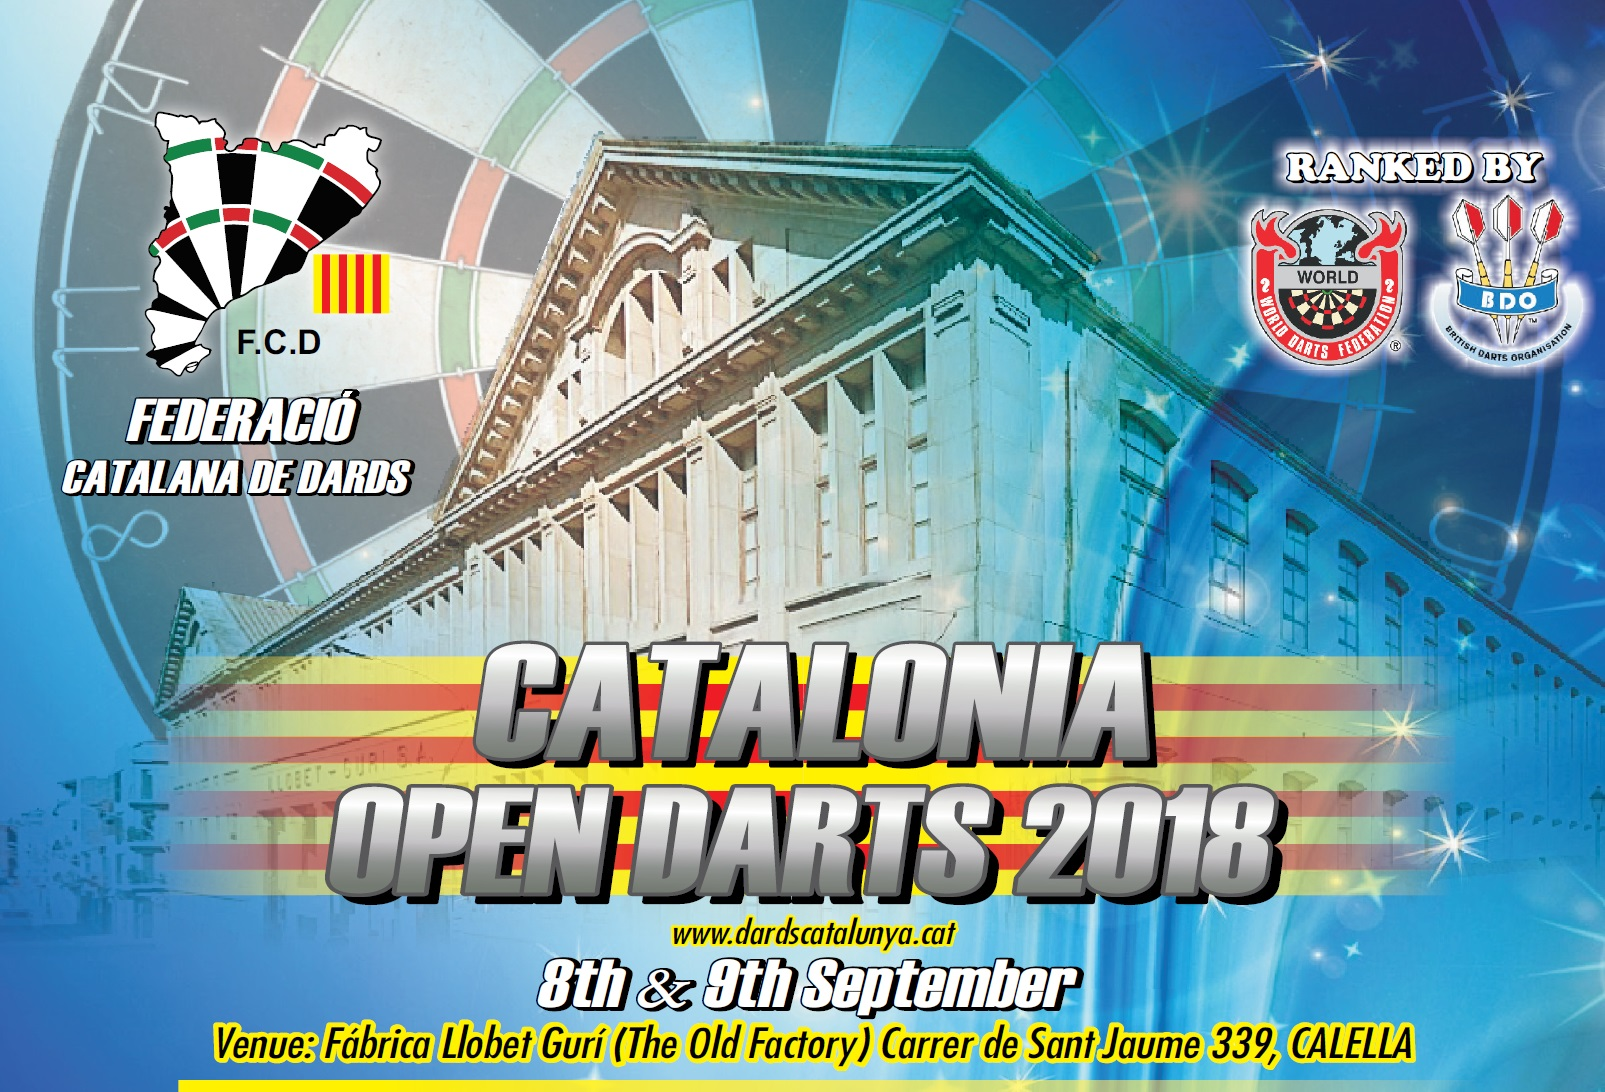 Catalonia Open Darts 2018: #CataloniaOpen2018 Last Minute